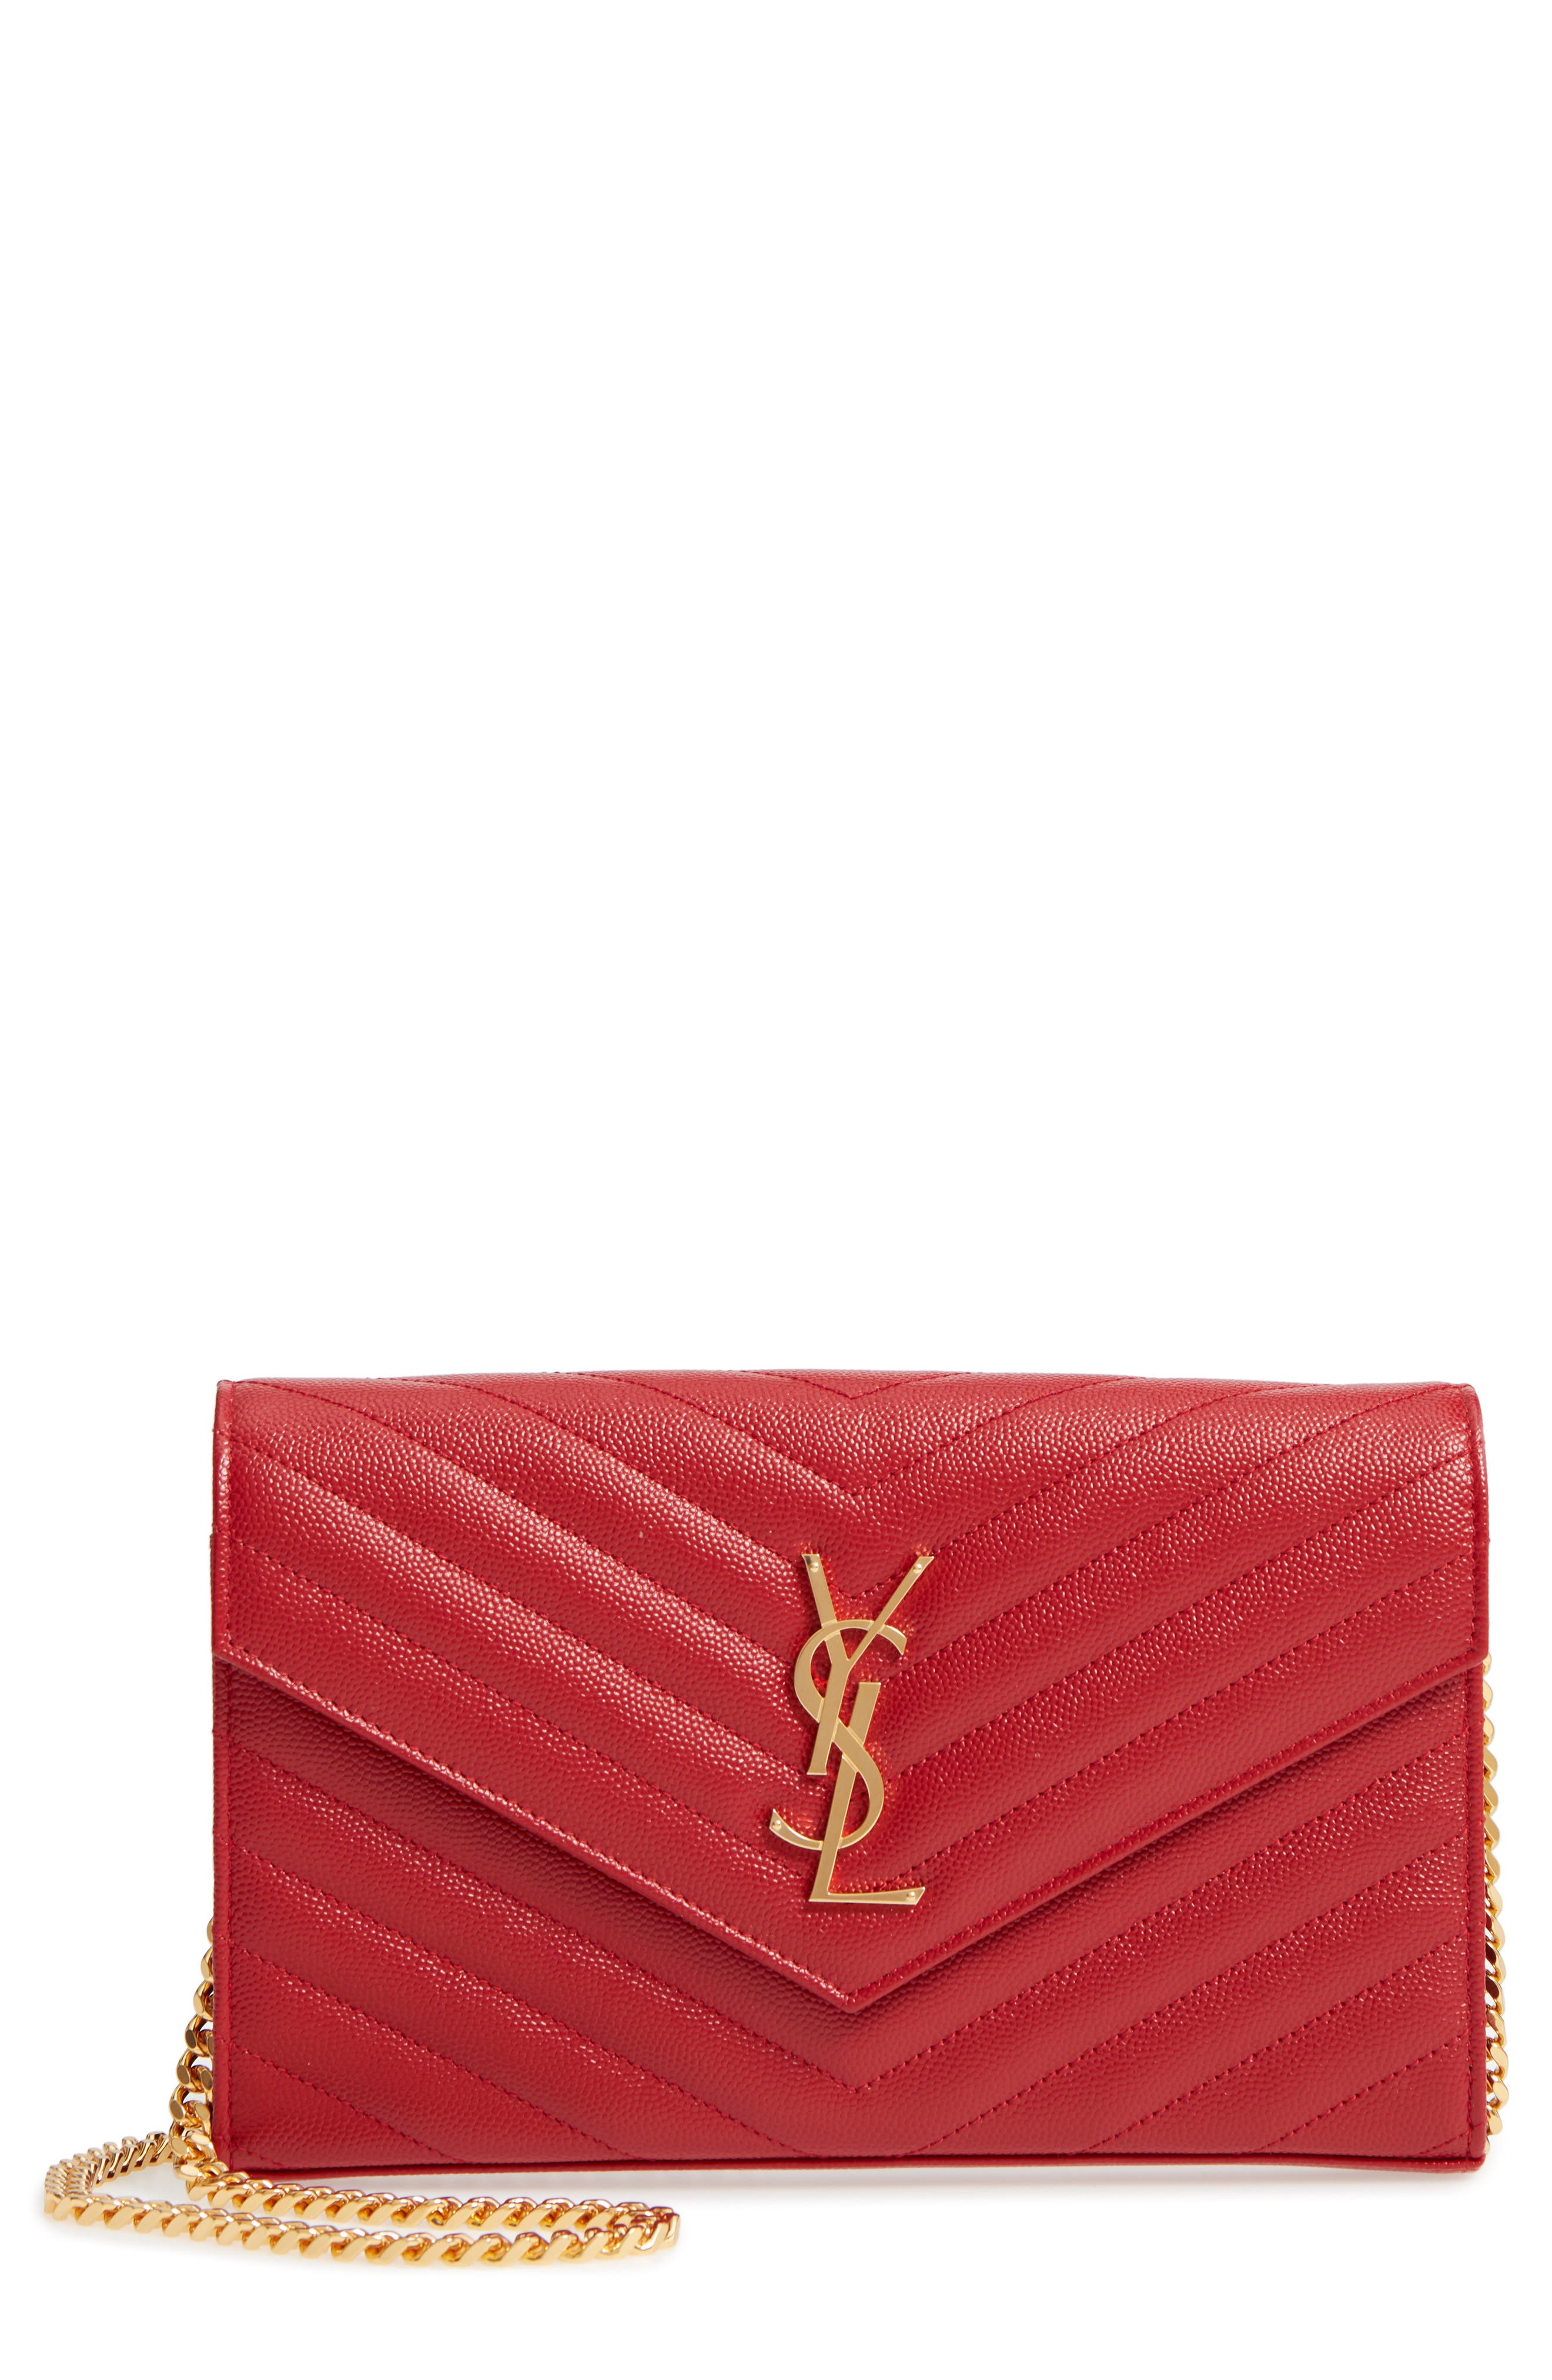 'Large Monogram' Quilted Leather Wallet on a Chain,                             Main thumbnail 1, color,                             ROUGE EROS